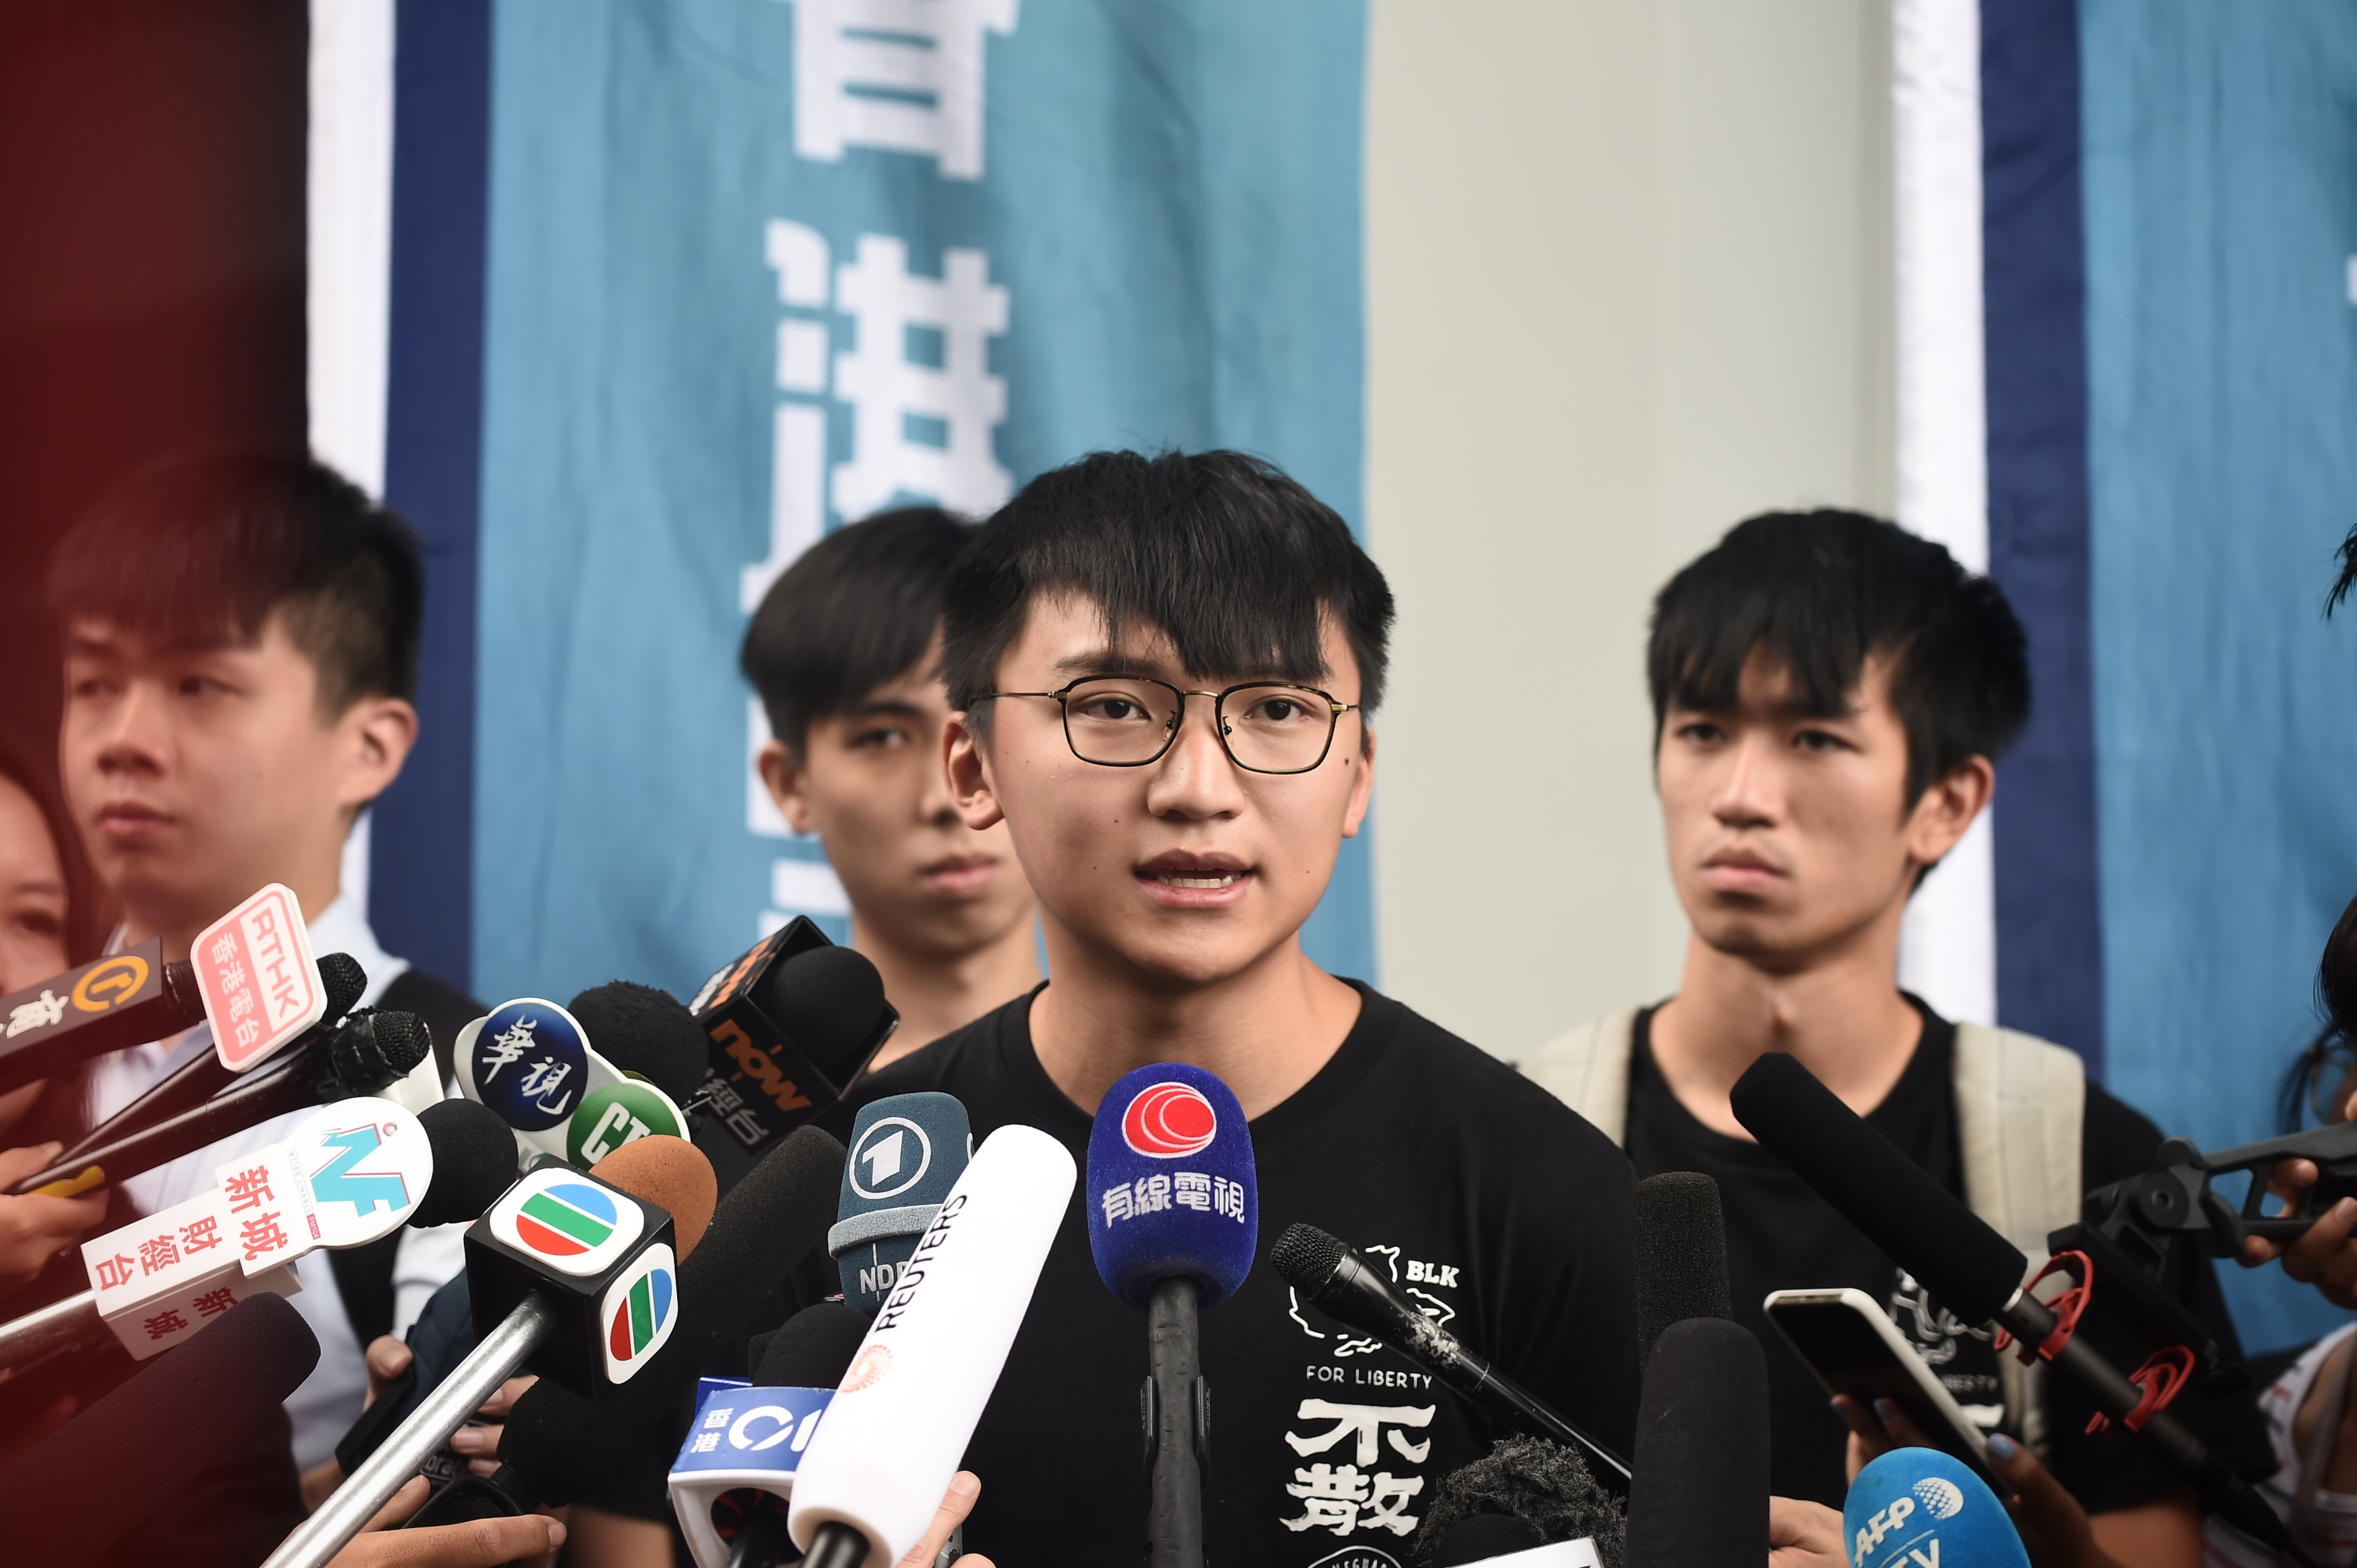 Demosisto Vice Chairperson Isaac Cheng speaks to press on the arrest of party leaders Joshua Wong and Agnes Chow, in Hong Kong on August 30, 2019.